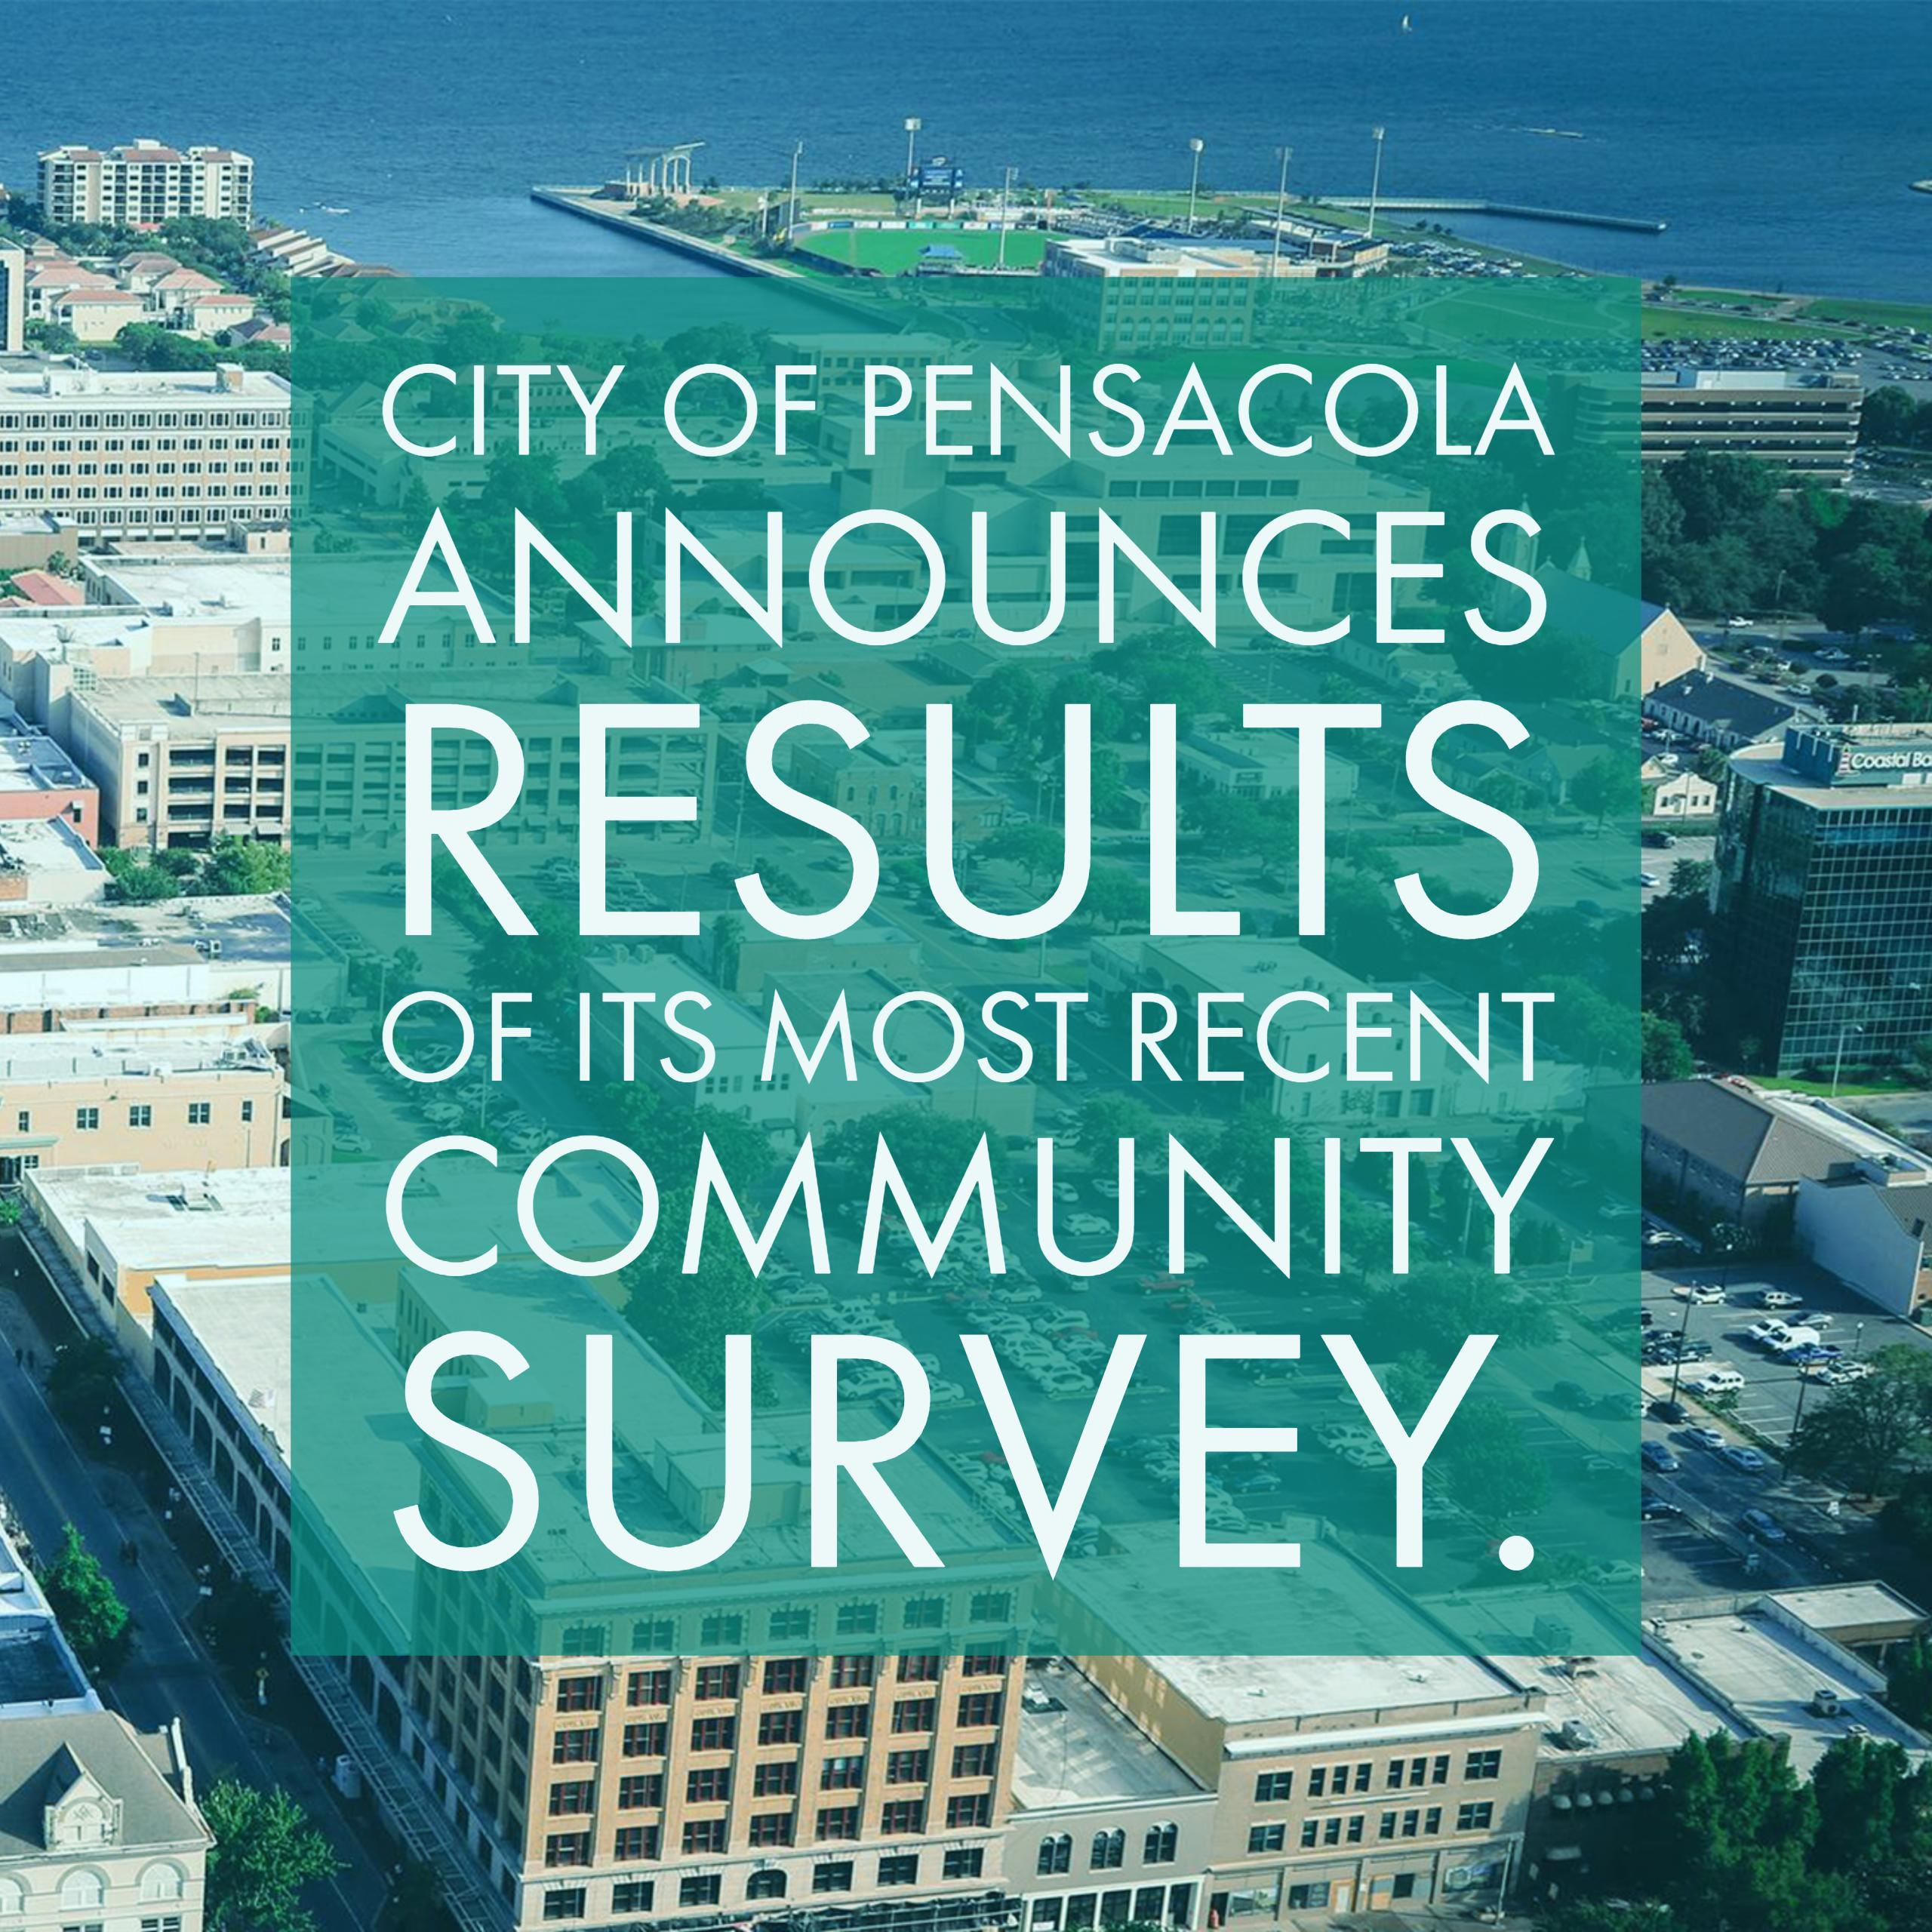 City of Pensacola Announces Results of its Most Recent Community Survey